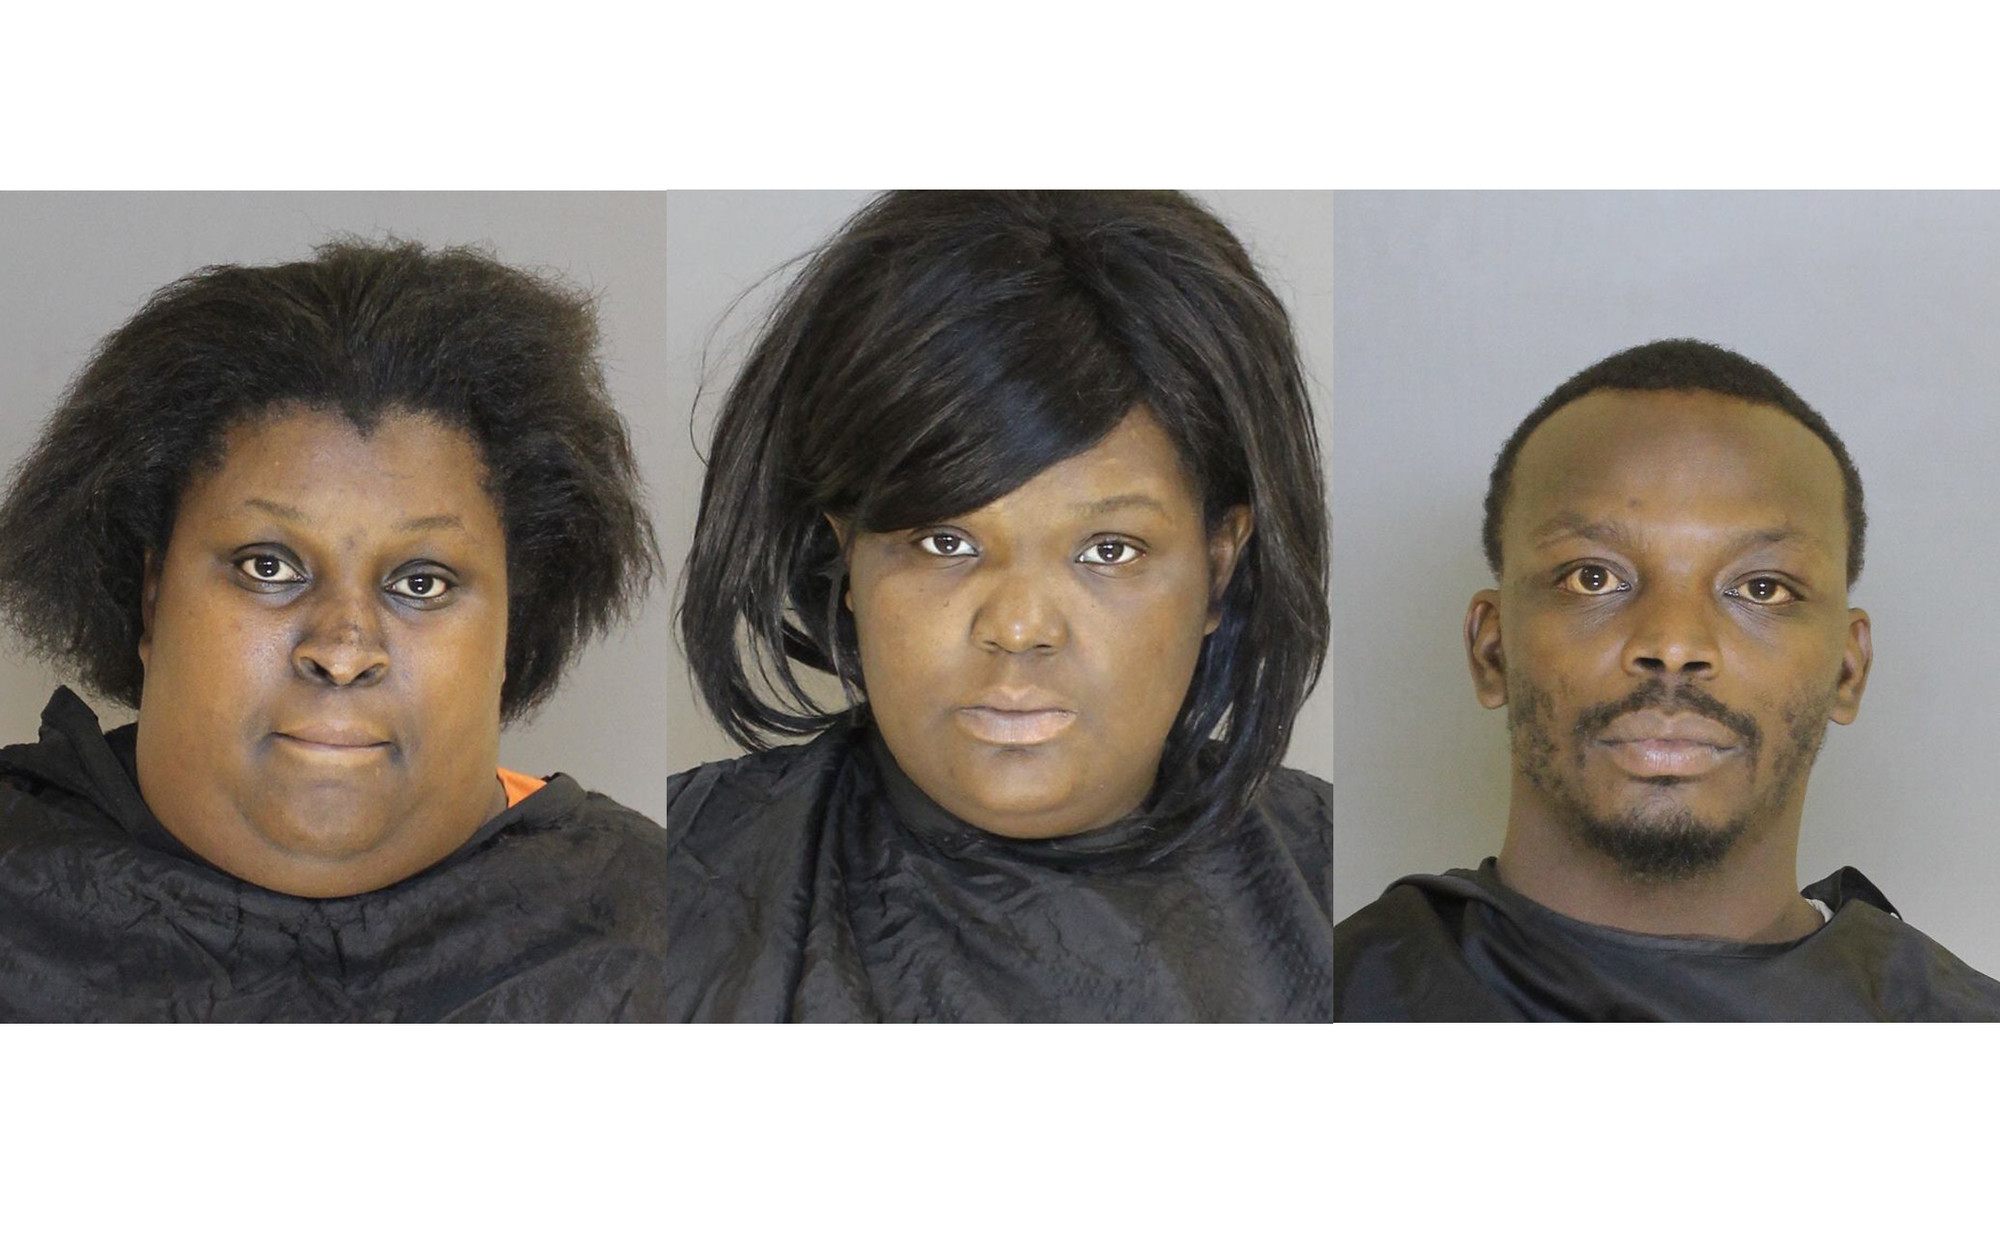 From left, Aireal Lakeia Johnson, Kimberly Denise Burgess, Rodney Jermaine Burgess.